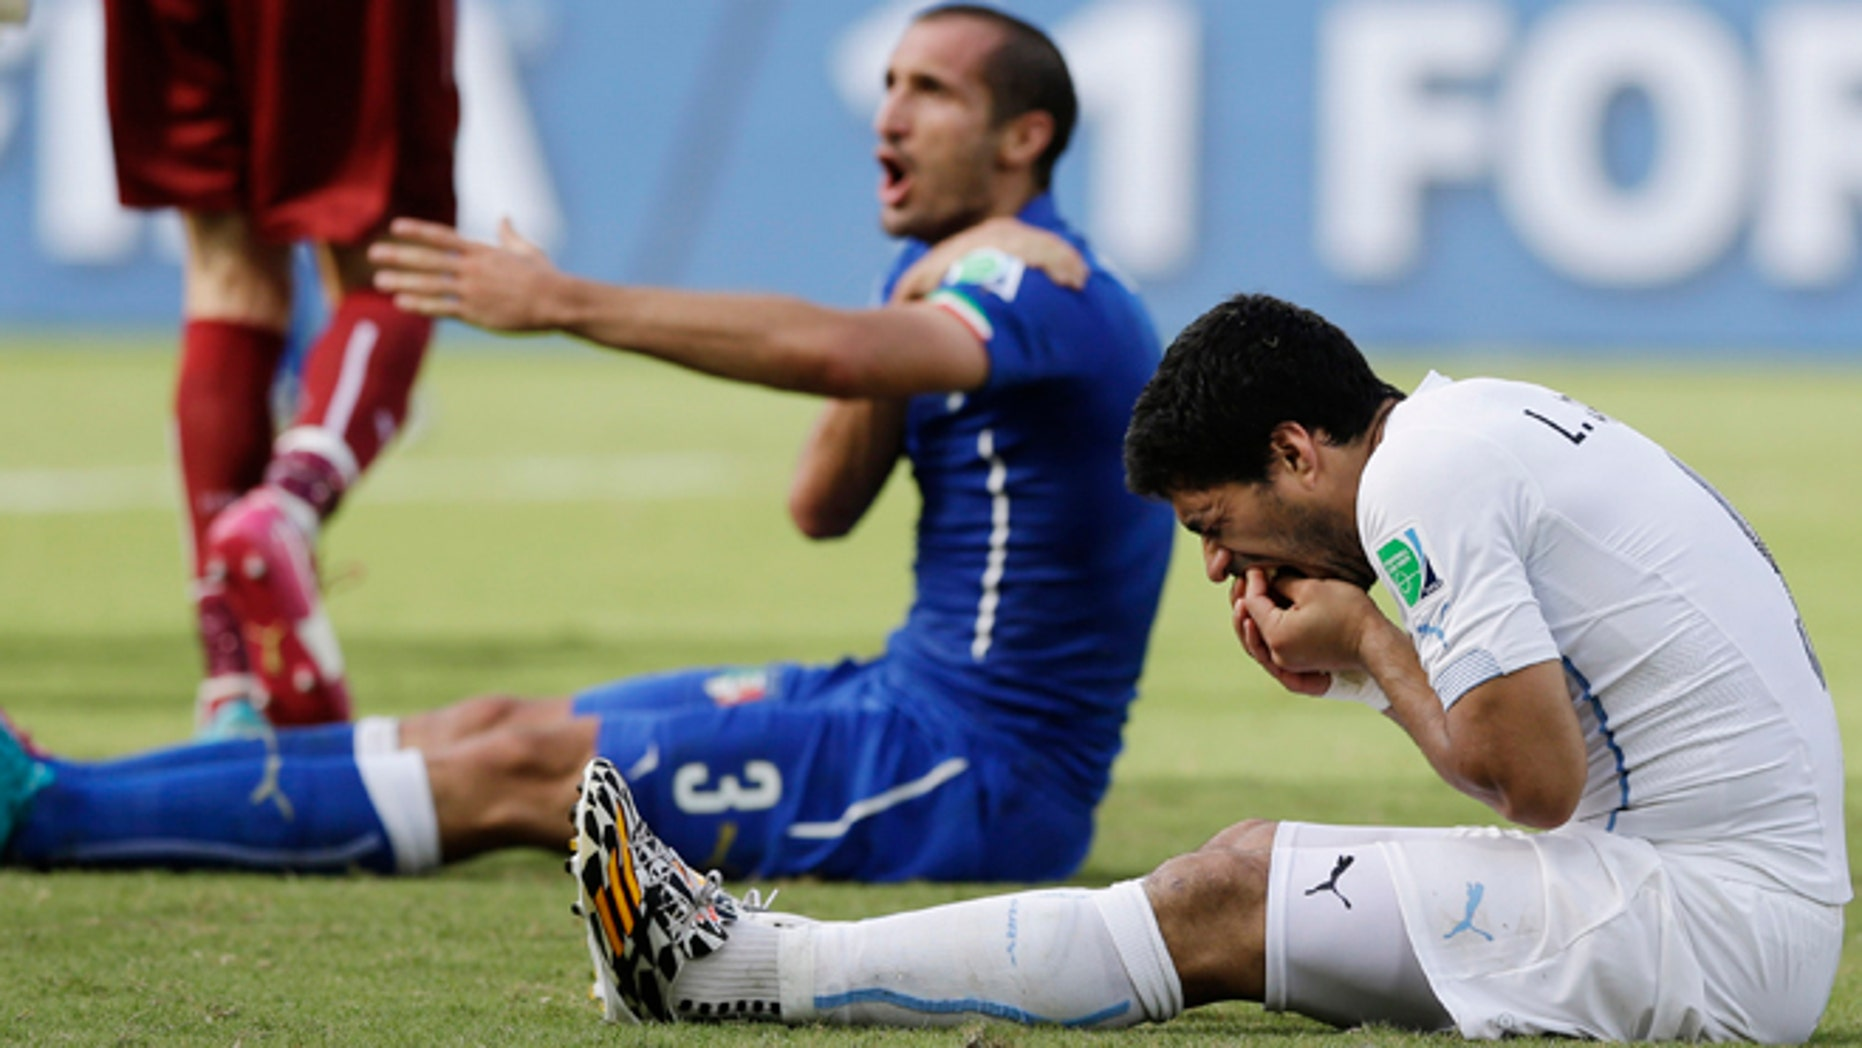 June 24, 2014: Italy's Giorgio Chiellini complains after Uruguay's Luis Suarez ran into his shoulder with his teeth during the group D World Cup soccer match between Italy and Uruguay at the Arena das Dunas in Natal, Brazil.